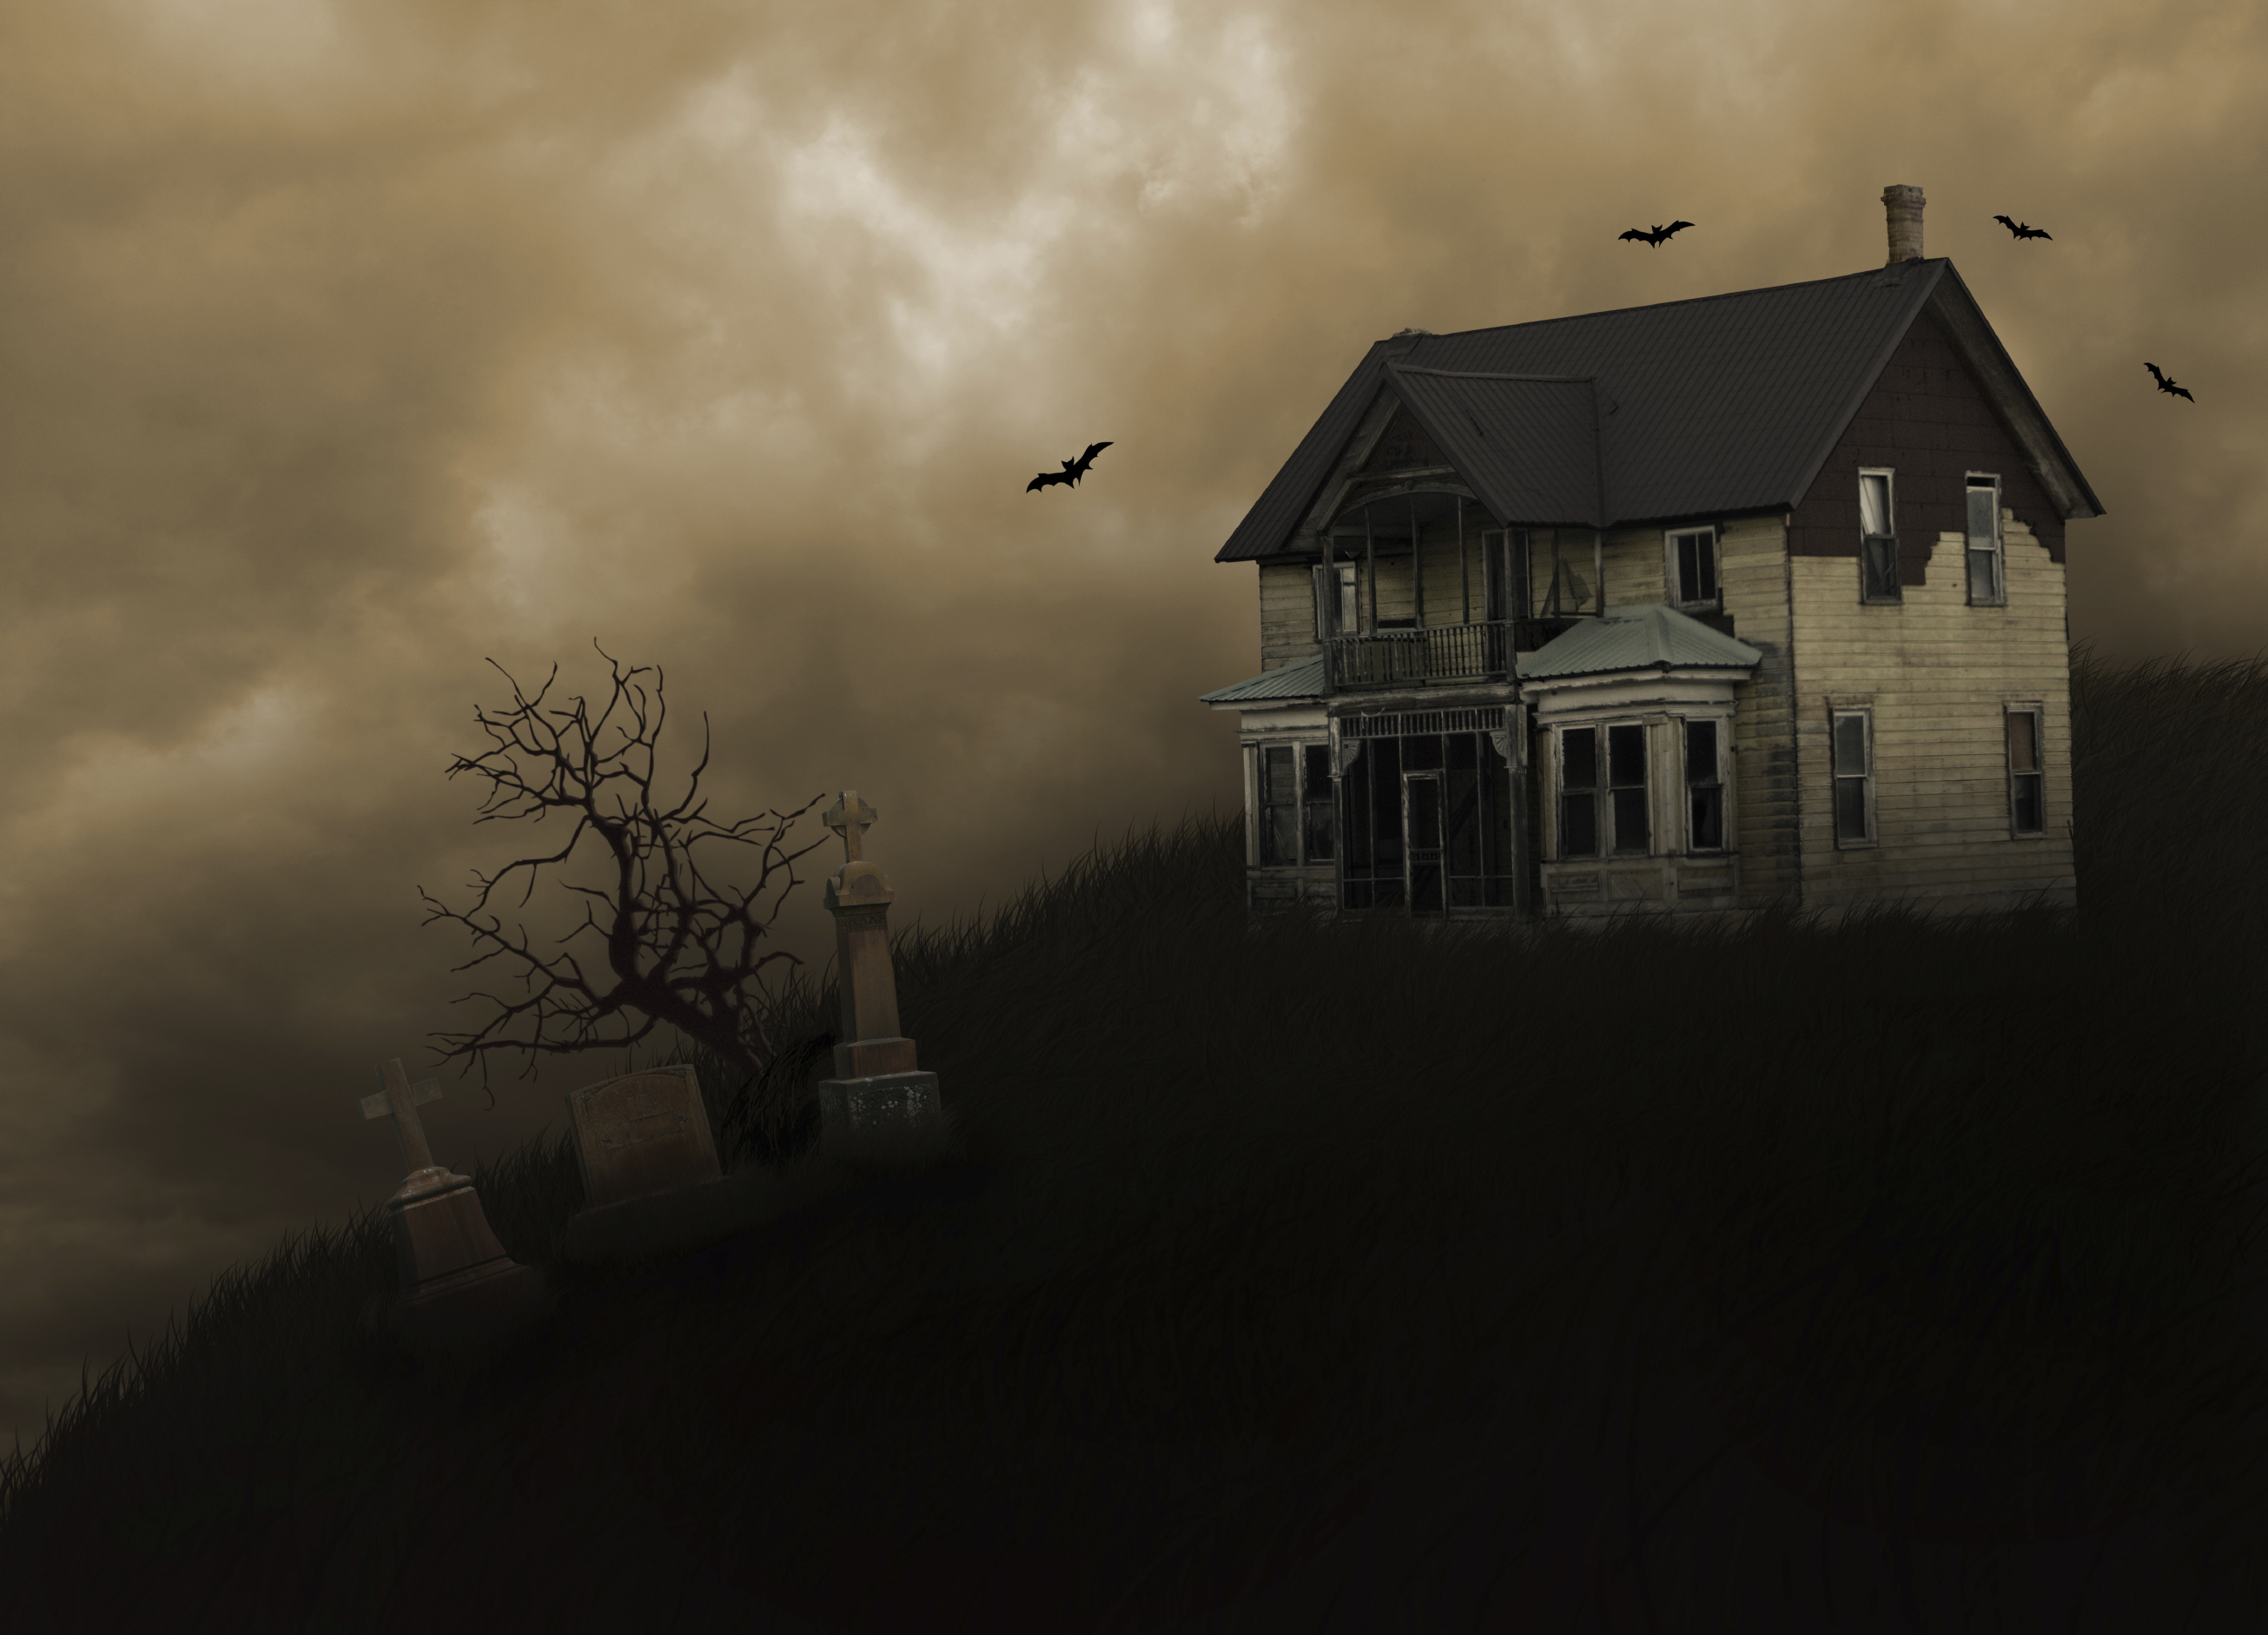 haunted houses, halloween attractions in oklahoma